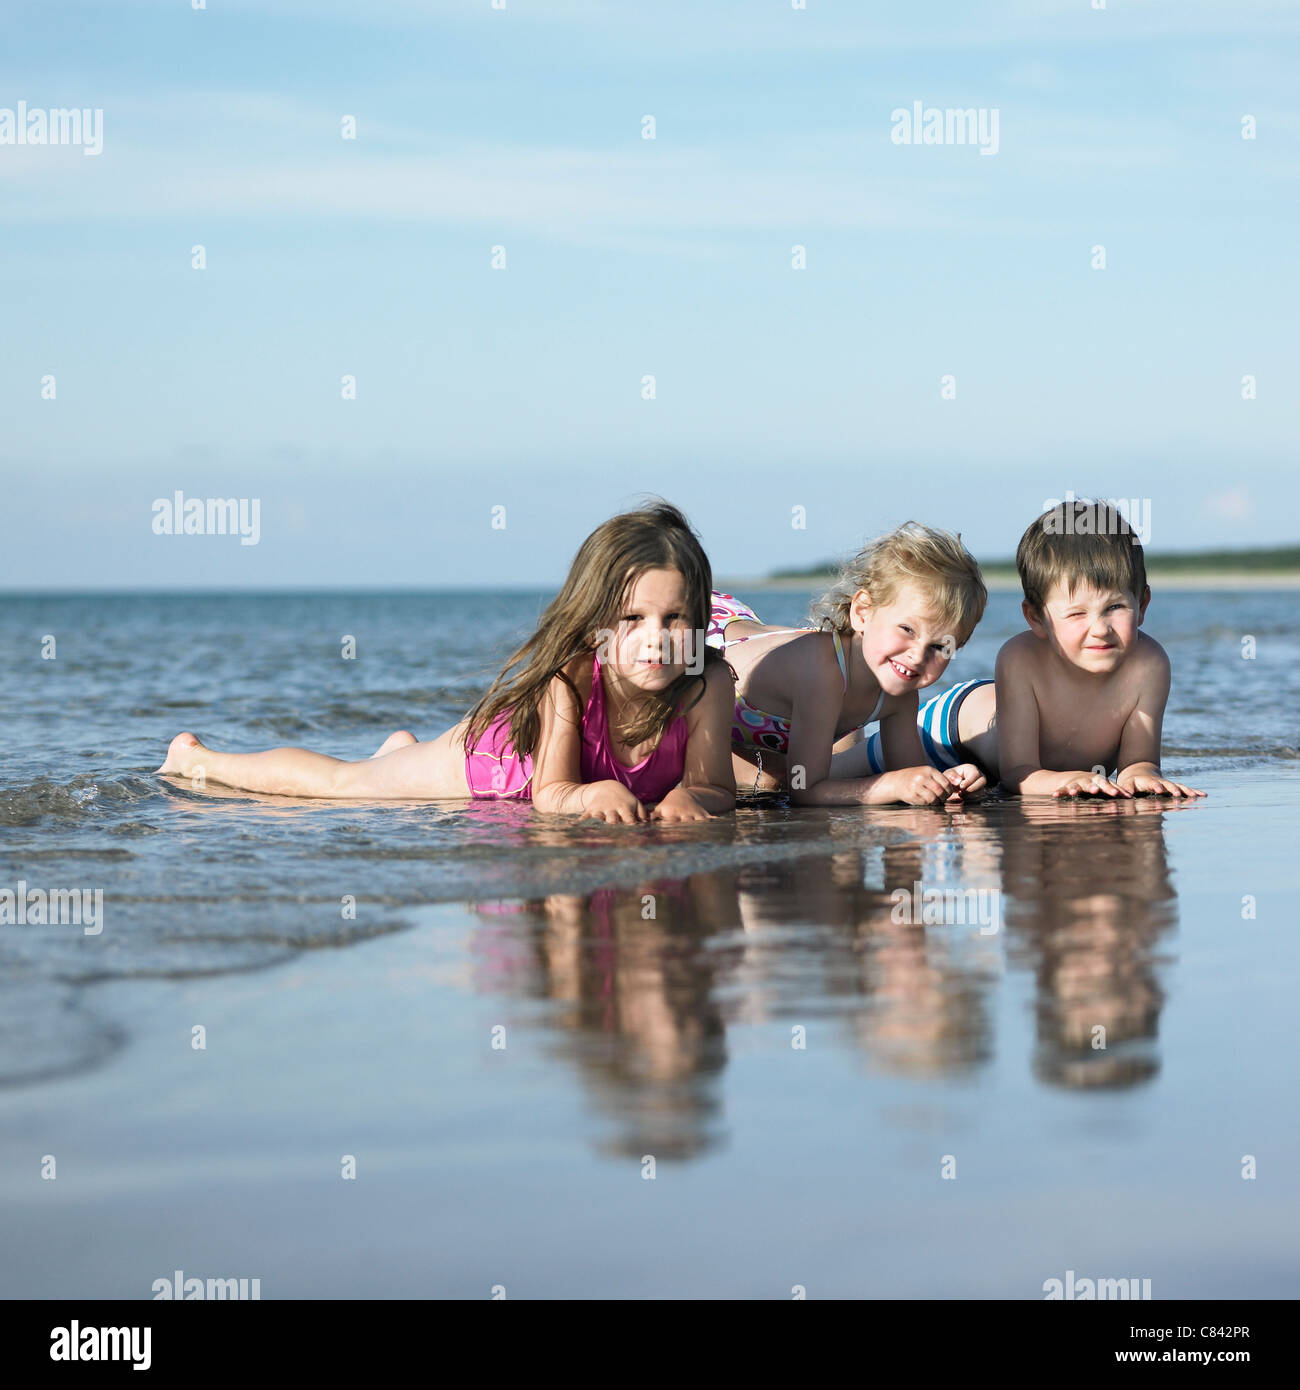 Children playing in waves on beach Stock Photo